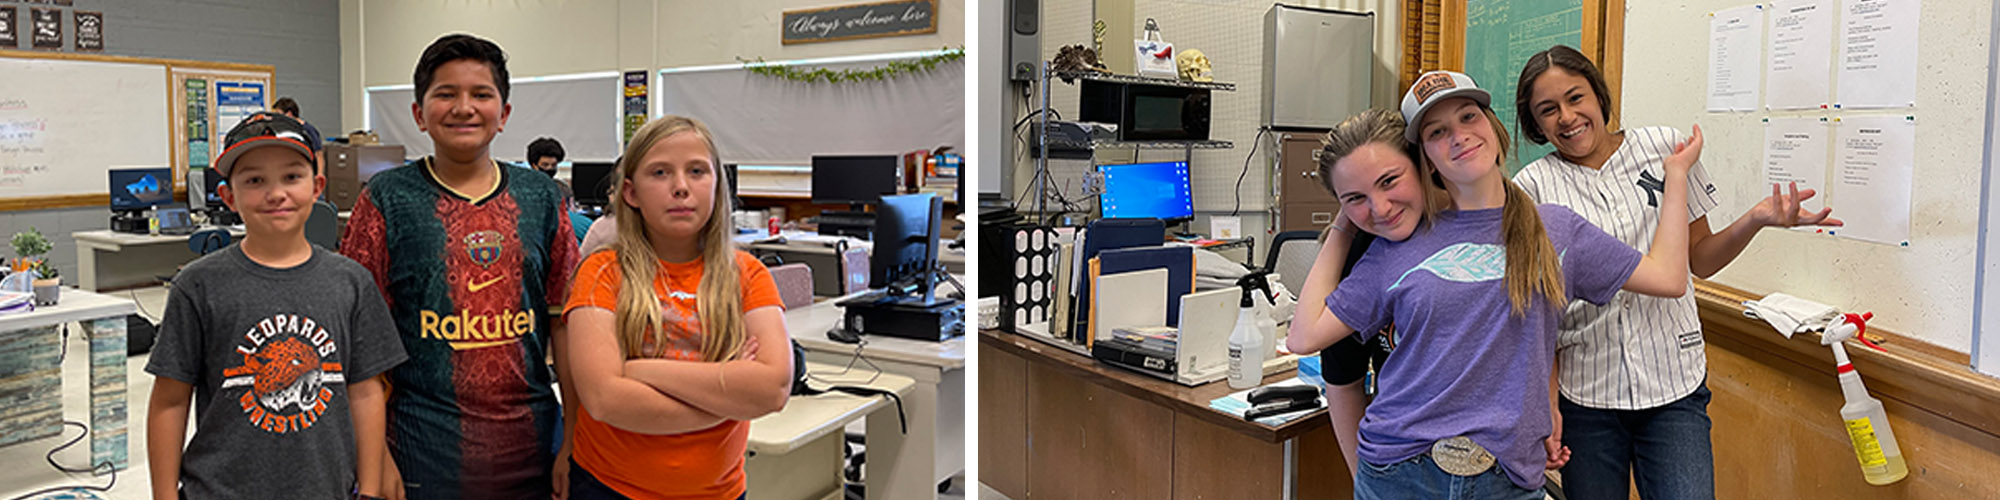 Group of elementary children standing in front of a yellow school bus